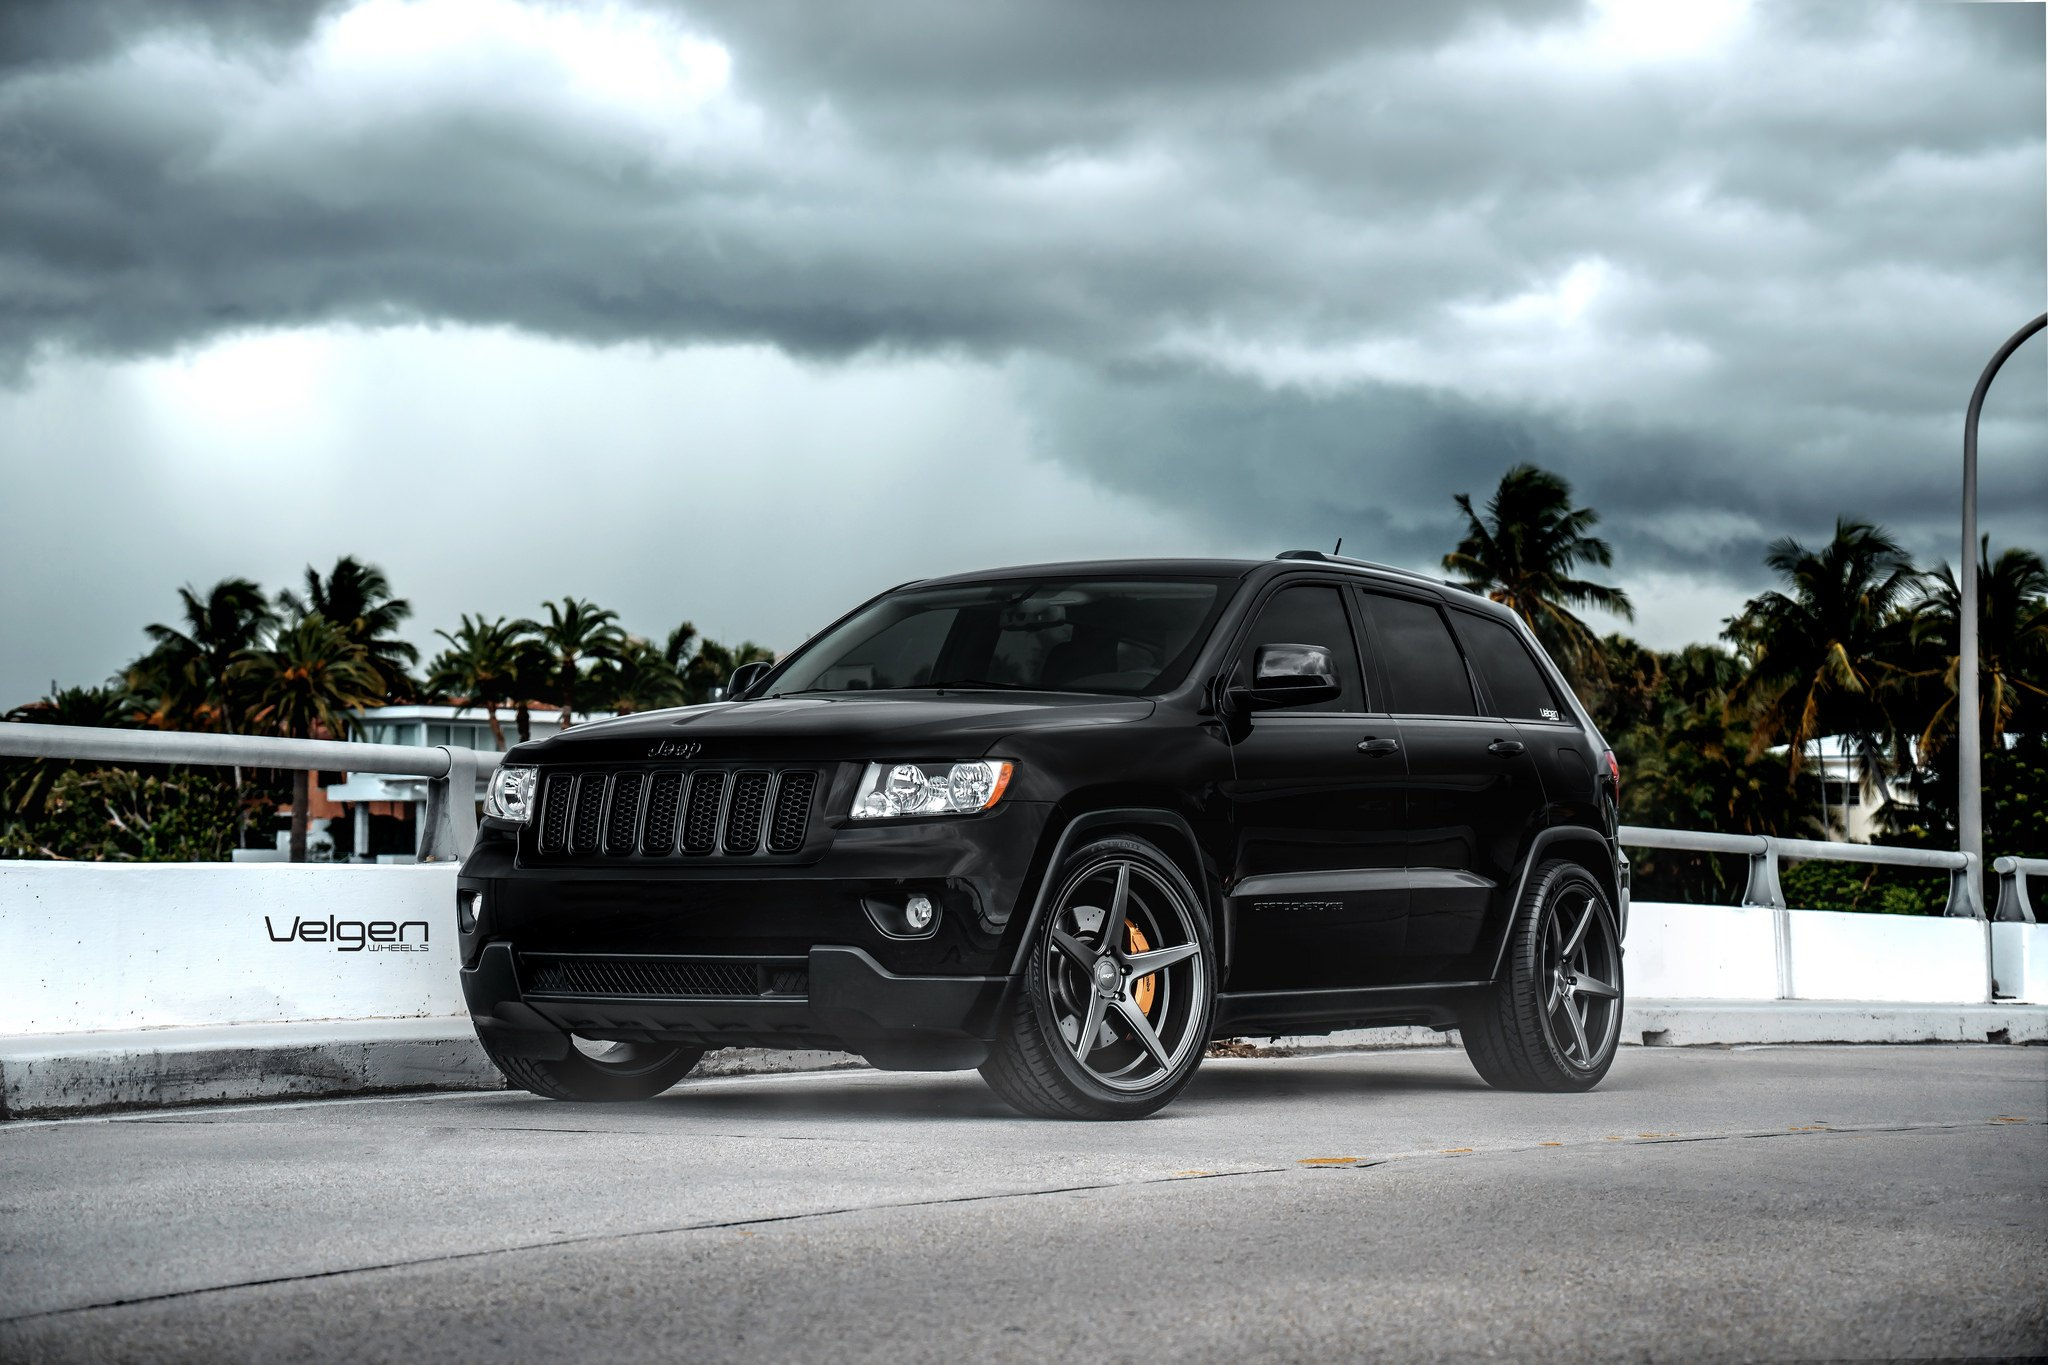 Subtle Black Accents and Custom Wheels on a Mighty Jeep ...